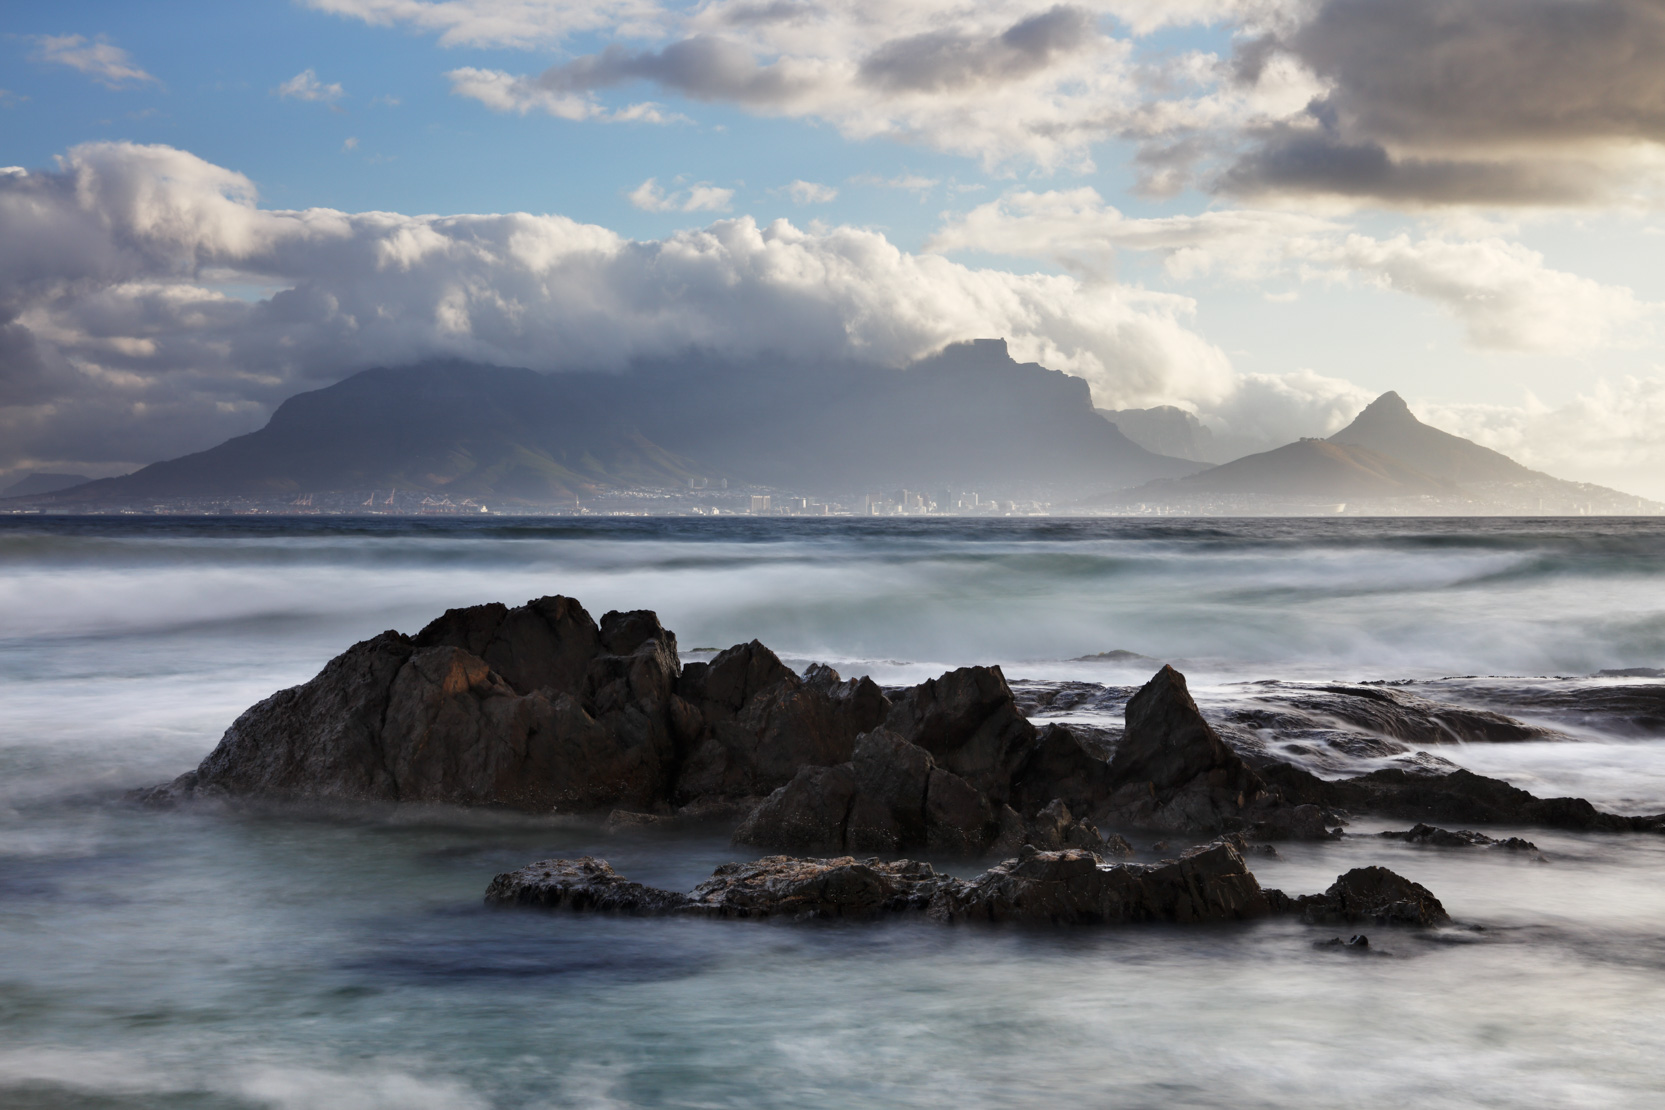 Table Mountain & Cape Town from Bloubergstrand, western Cape, South Africa